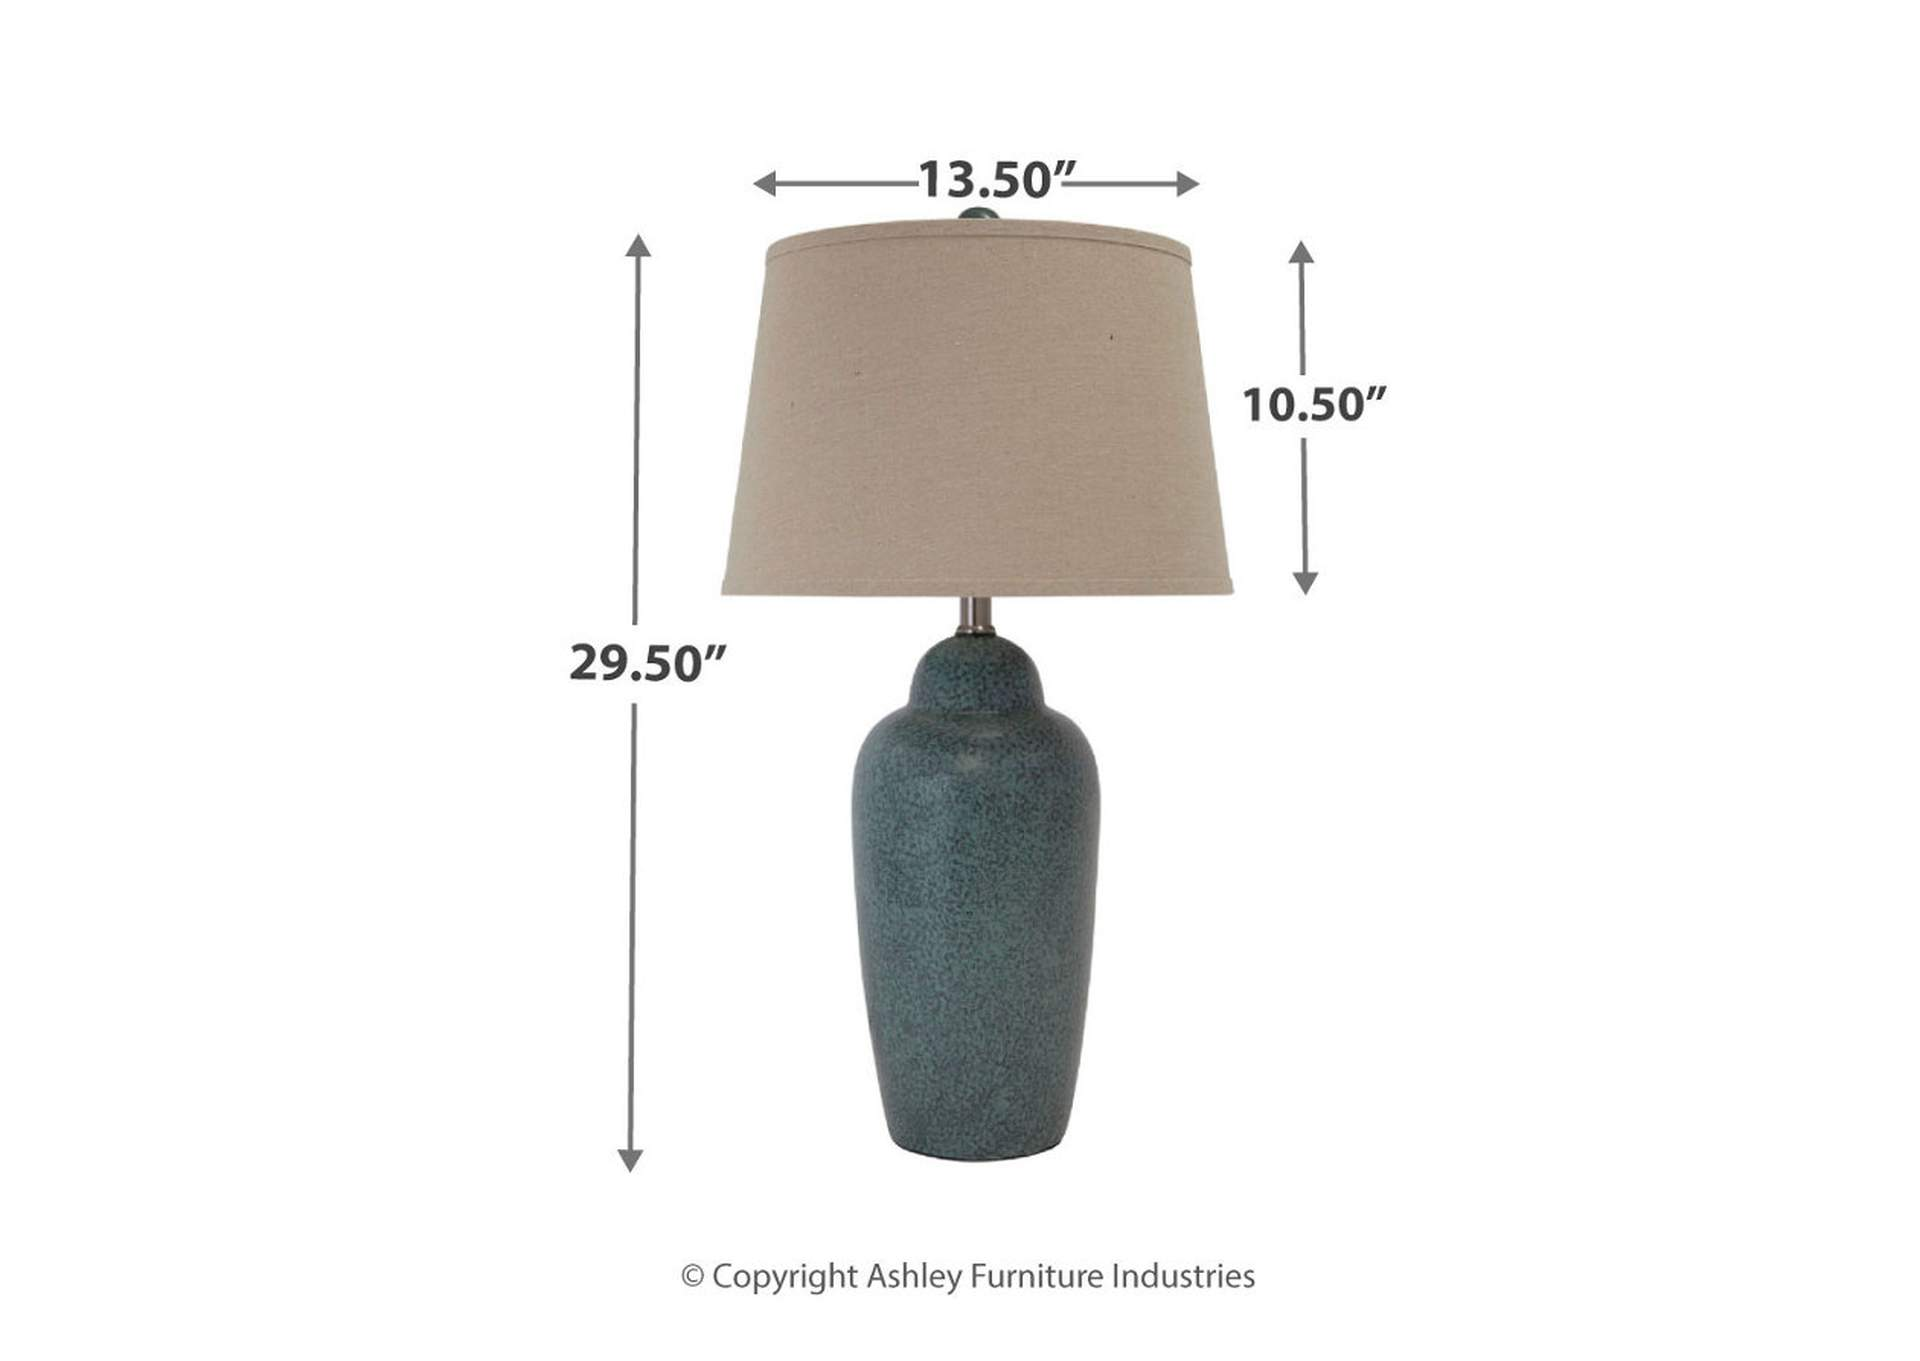 Green Ceramic Table Lamp,Signature Design By Ashley